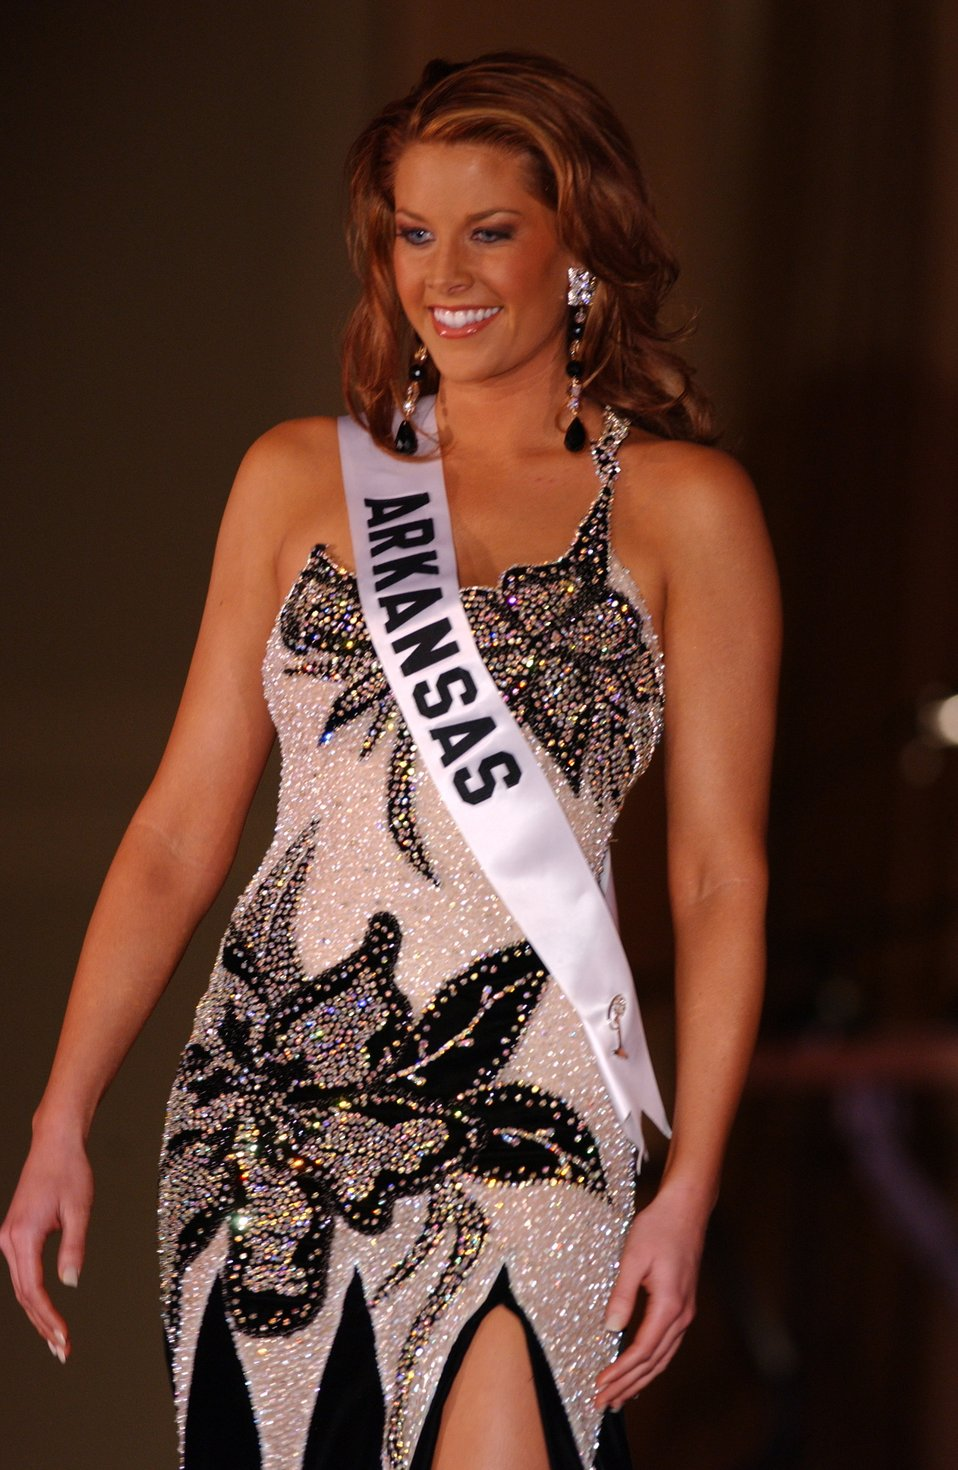 Air Force lieutenant in Miss USA contest